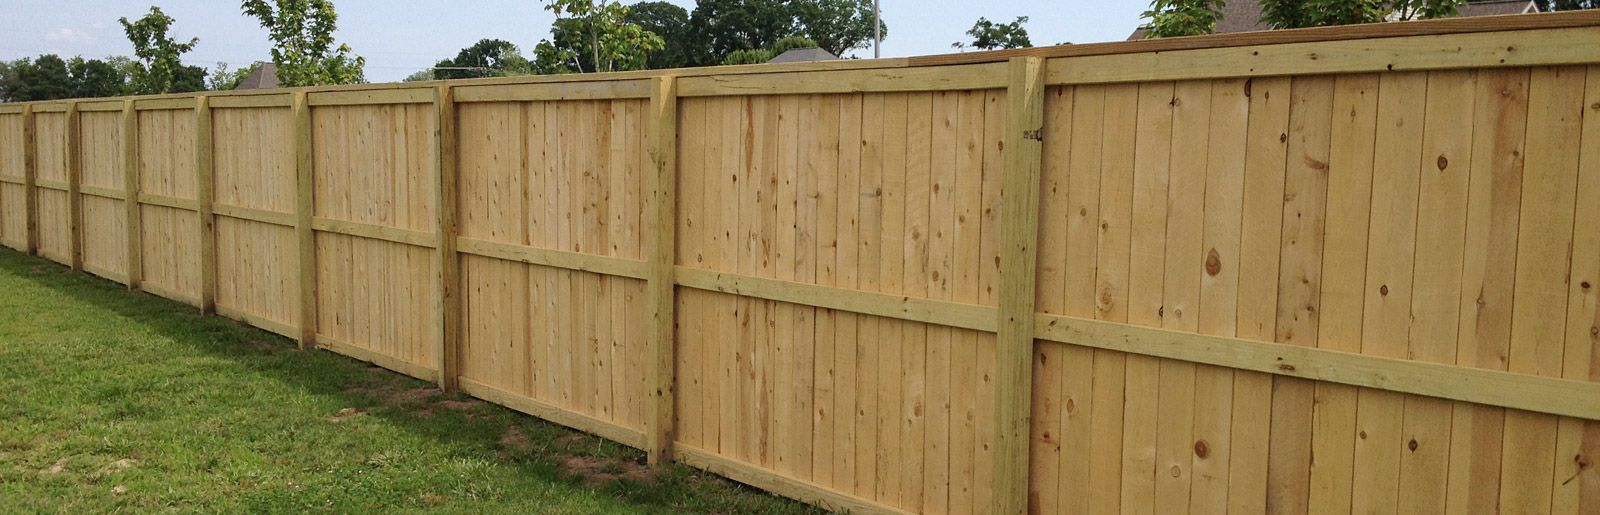 Custom Site Fencing Services That Are Safe and Secure